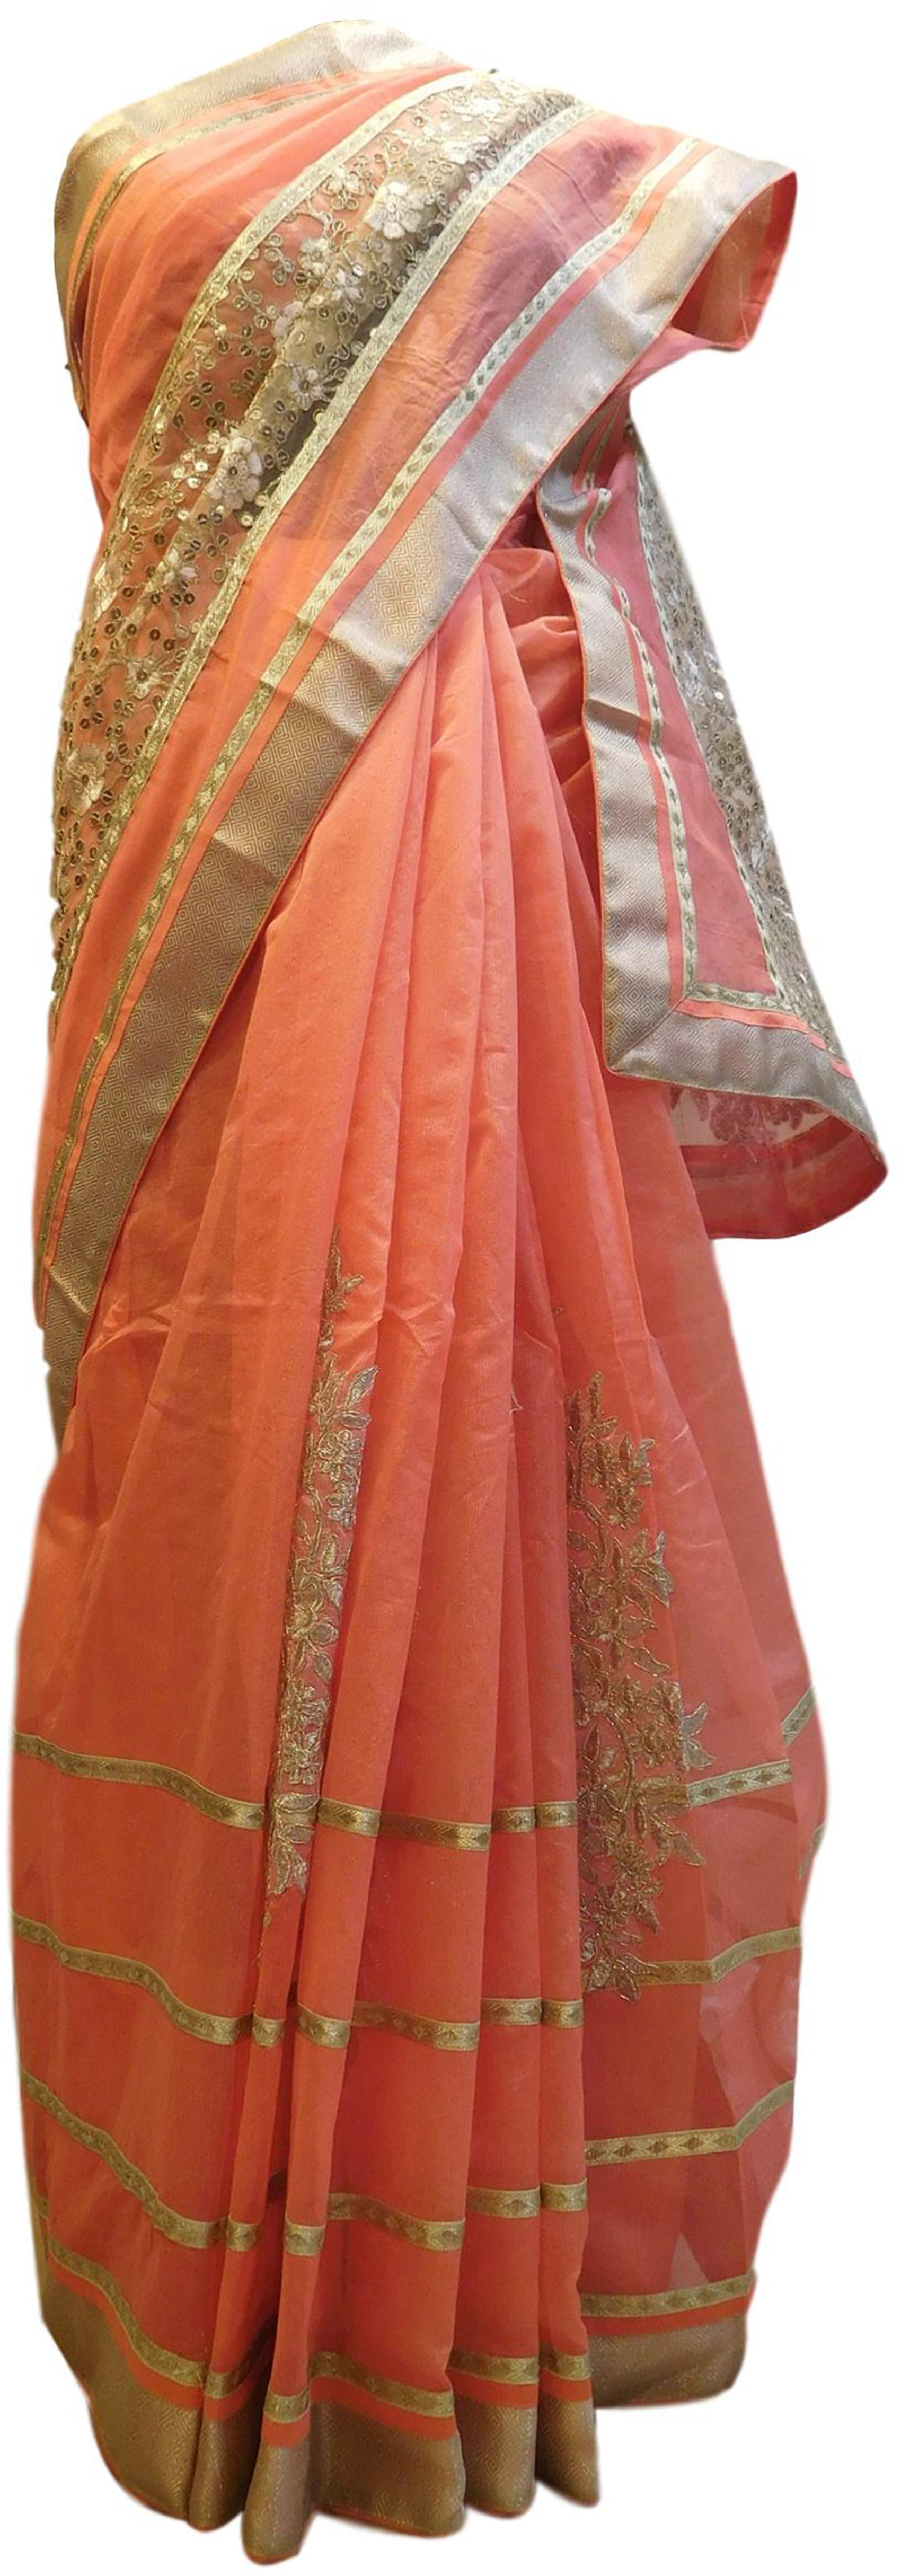 Peach Designer PartyWear Pure Supernet (Cotton) Thread Zari Sequence Work Saree Sari With Beige Border